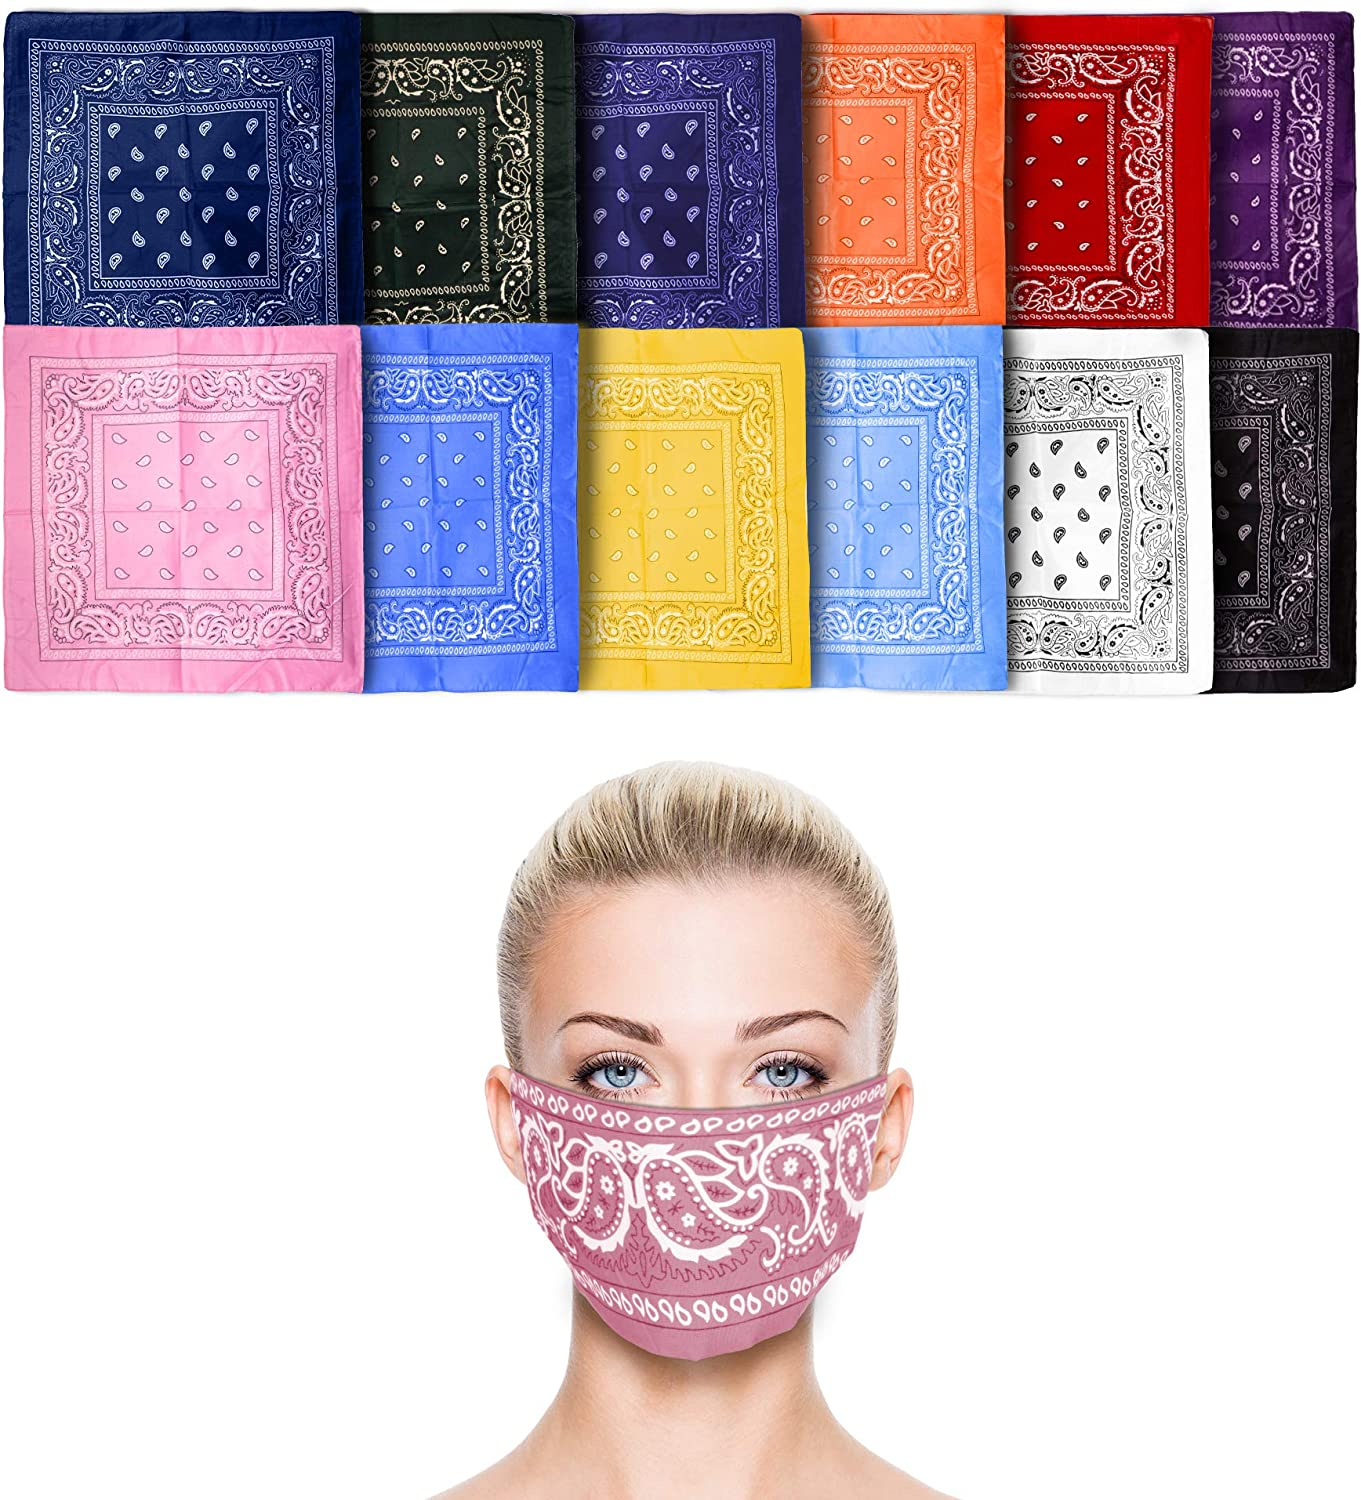 12pk Assort- Two Tones Basico 100/% Cotton Head Wrap Bandanas 12 Pack with Tube Face Mask//Headband